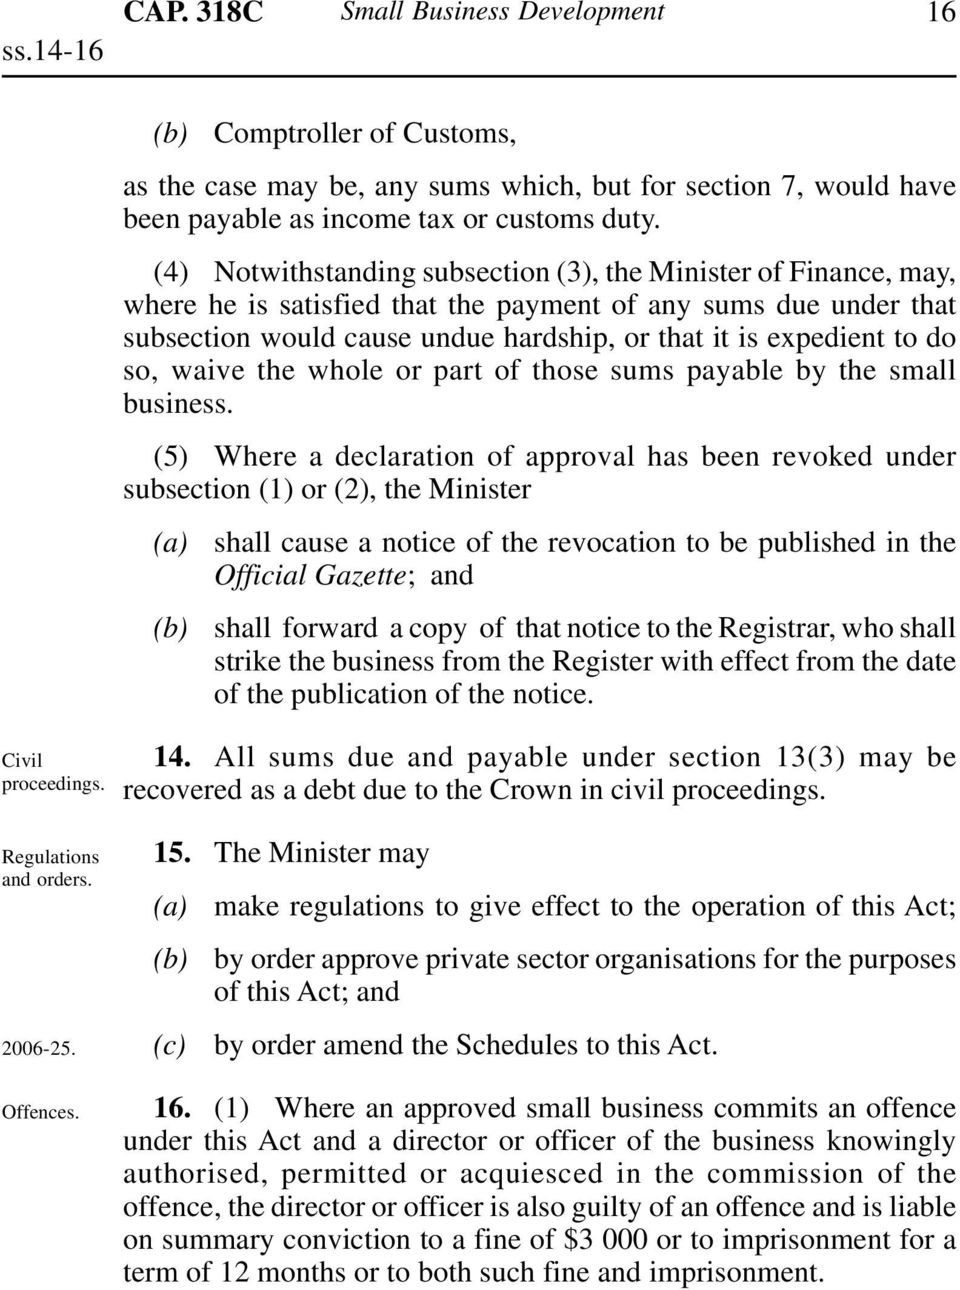 (4) Notwithstanding subsection (3), the Minister of Finance, may, where he is satisfied that the payment of any sums due under that subsection would cause undue hardship, or that it is expedient to